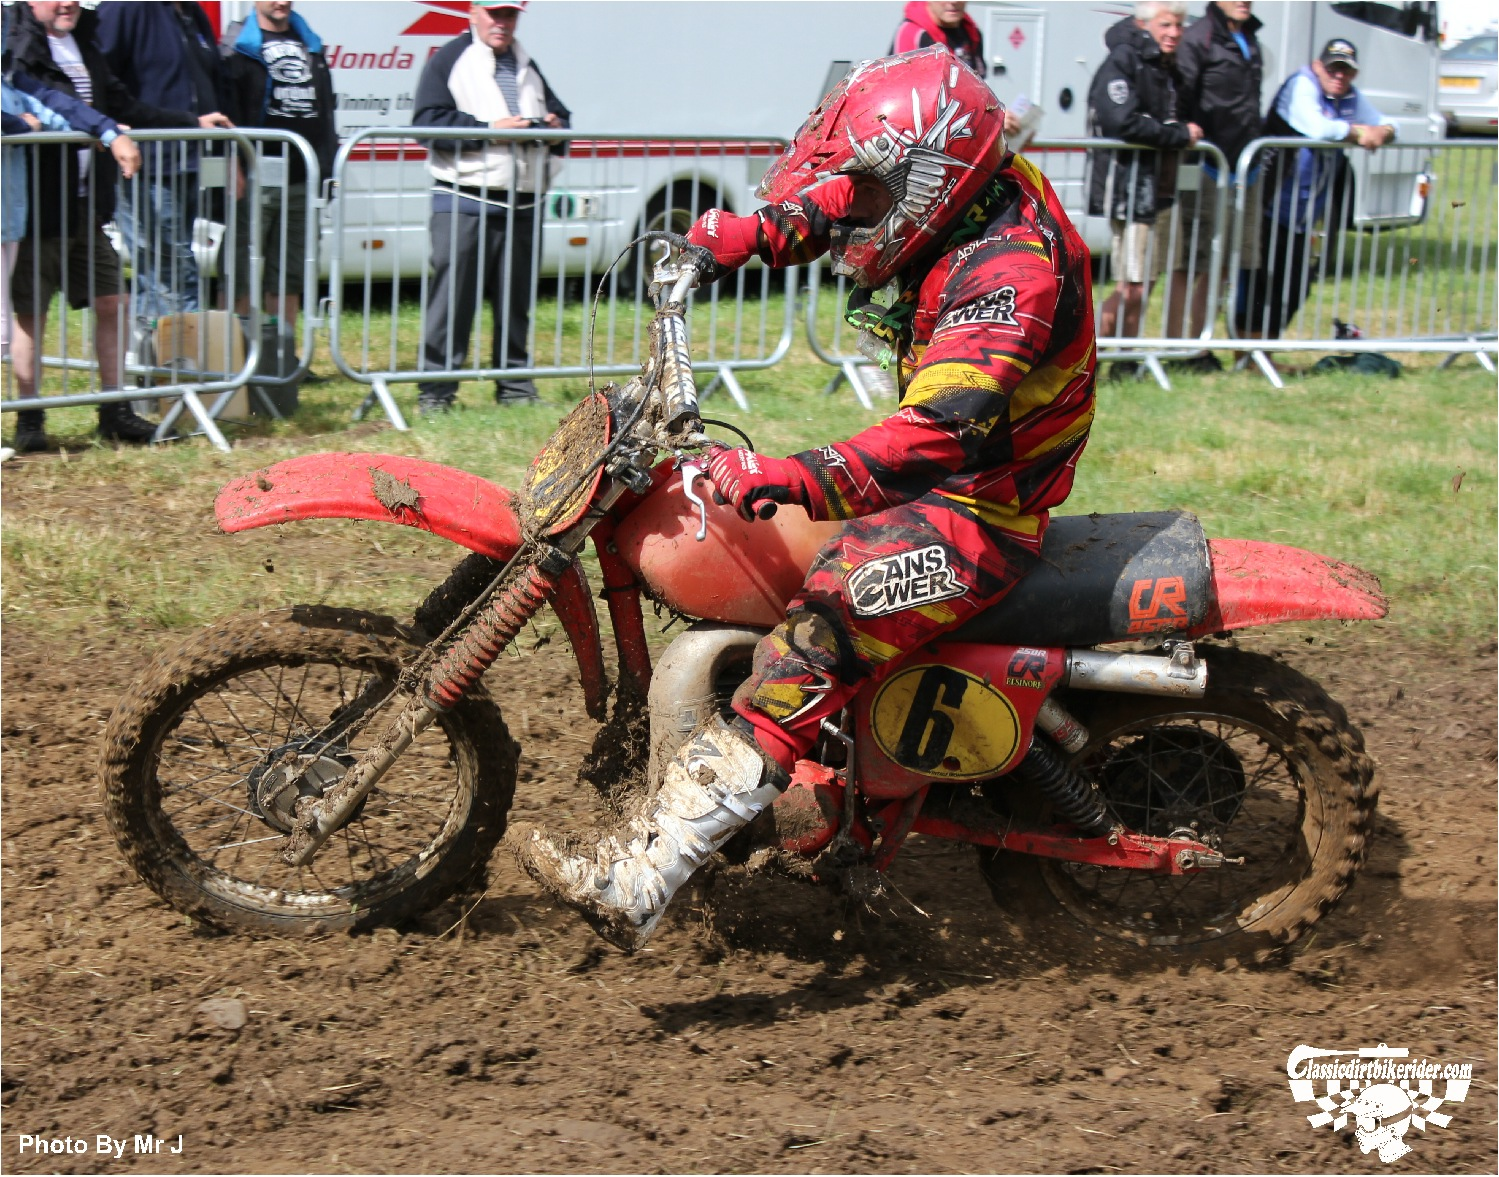 king of the castle 2015 photos Farleigh Castle twinshock motocross classicdirtbikerider.com 80